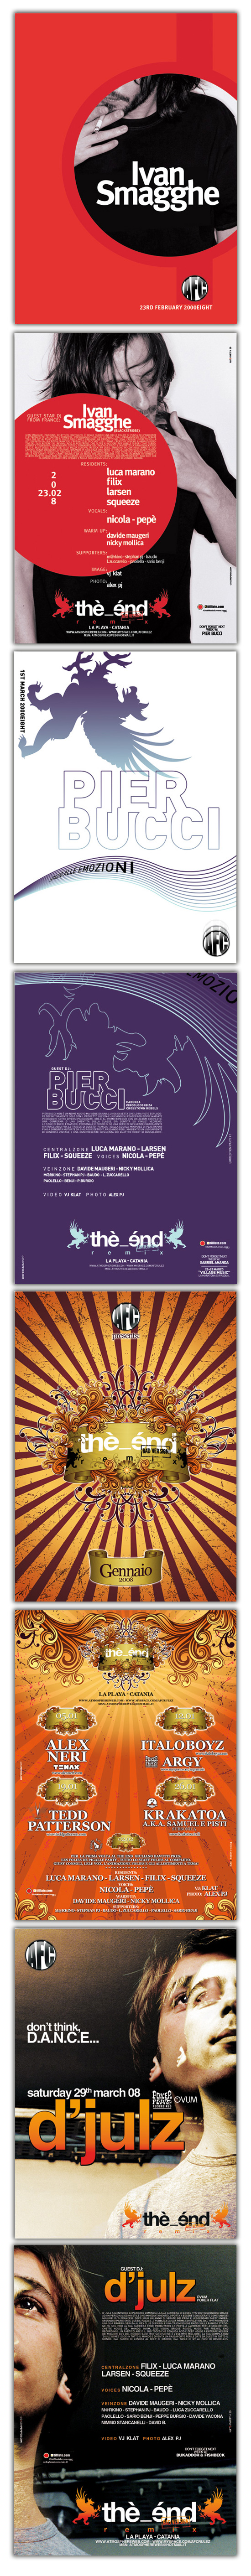 The End Rmx – Catania (IT)